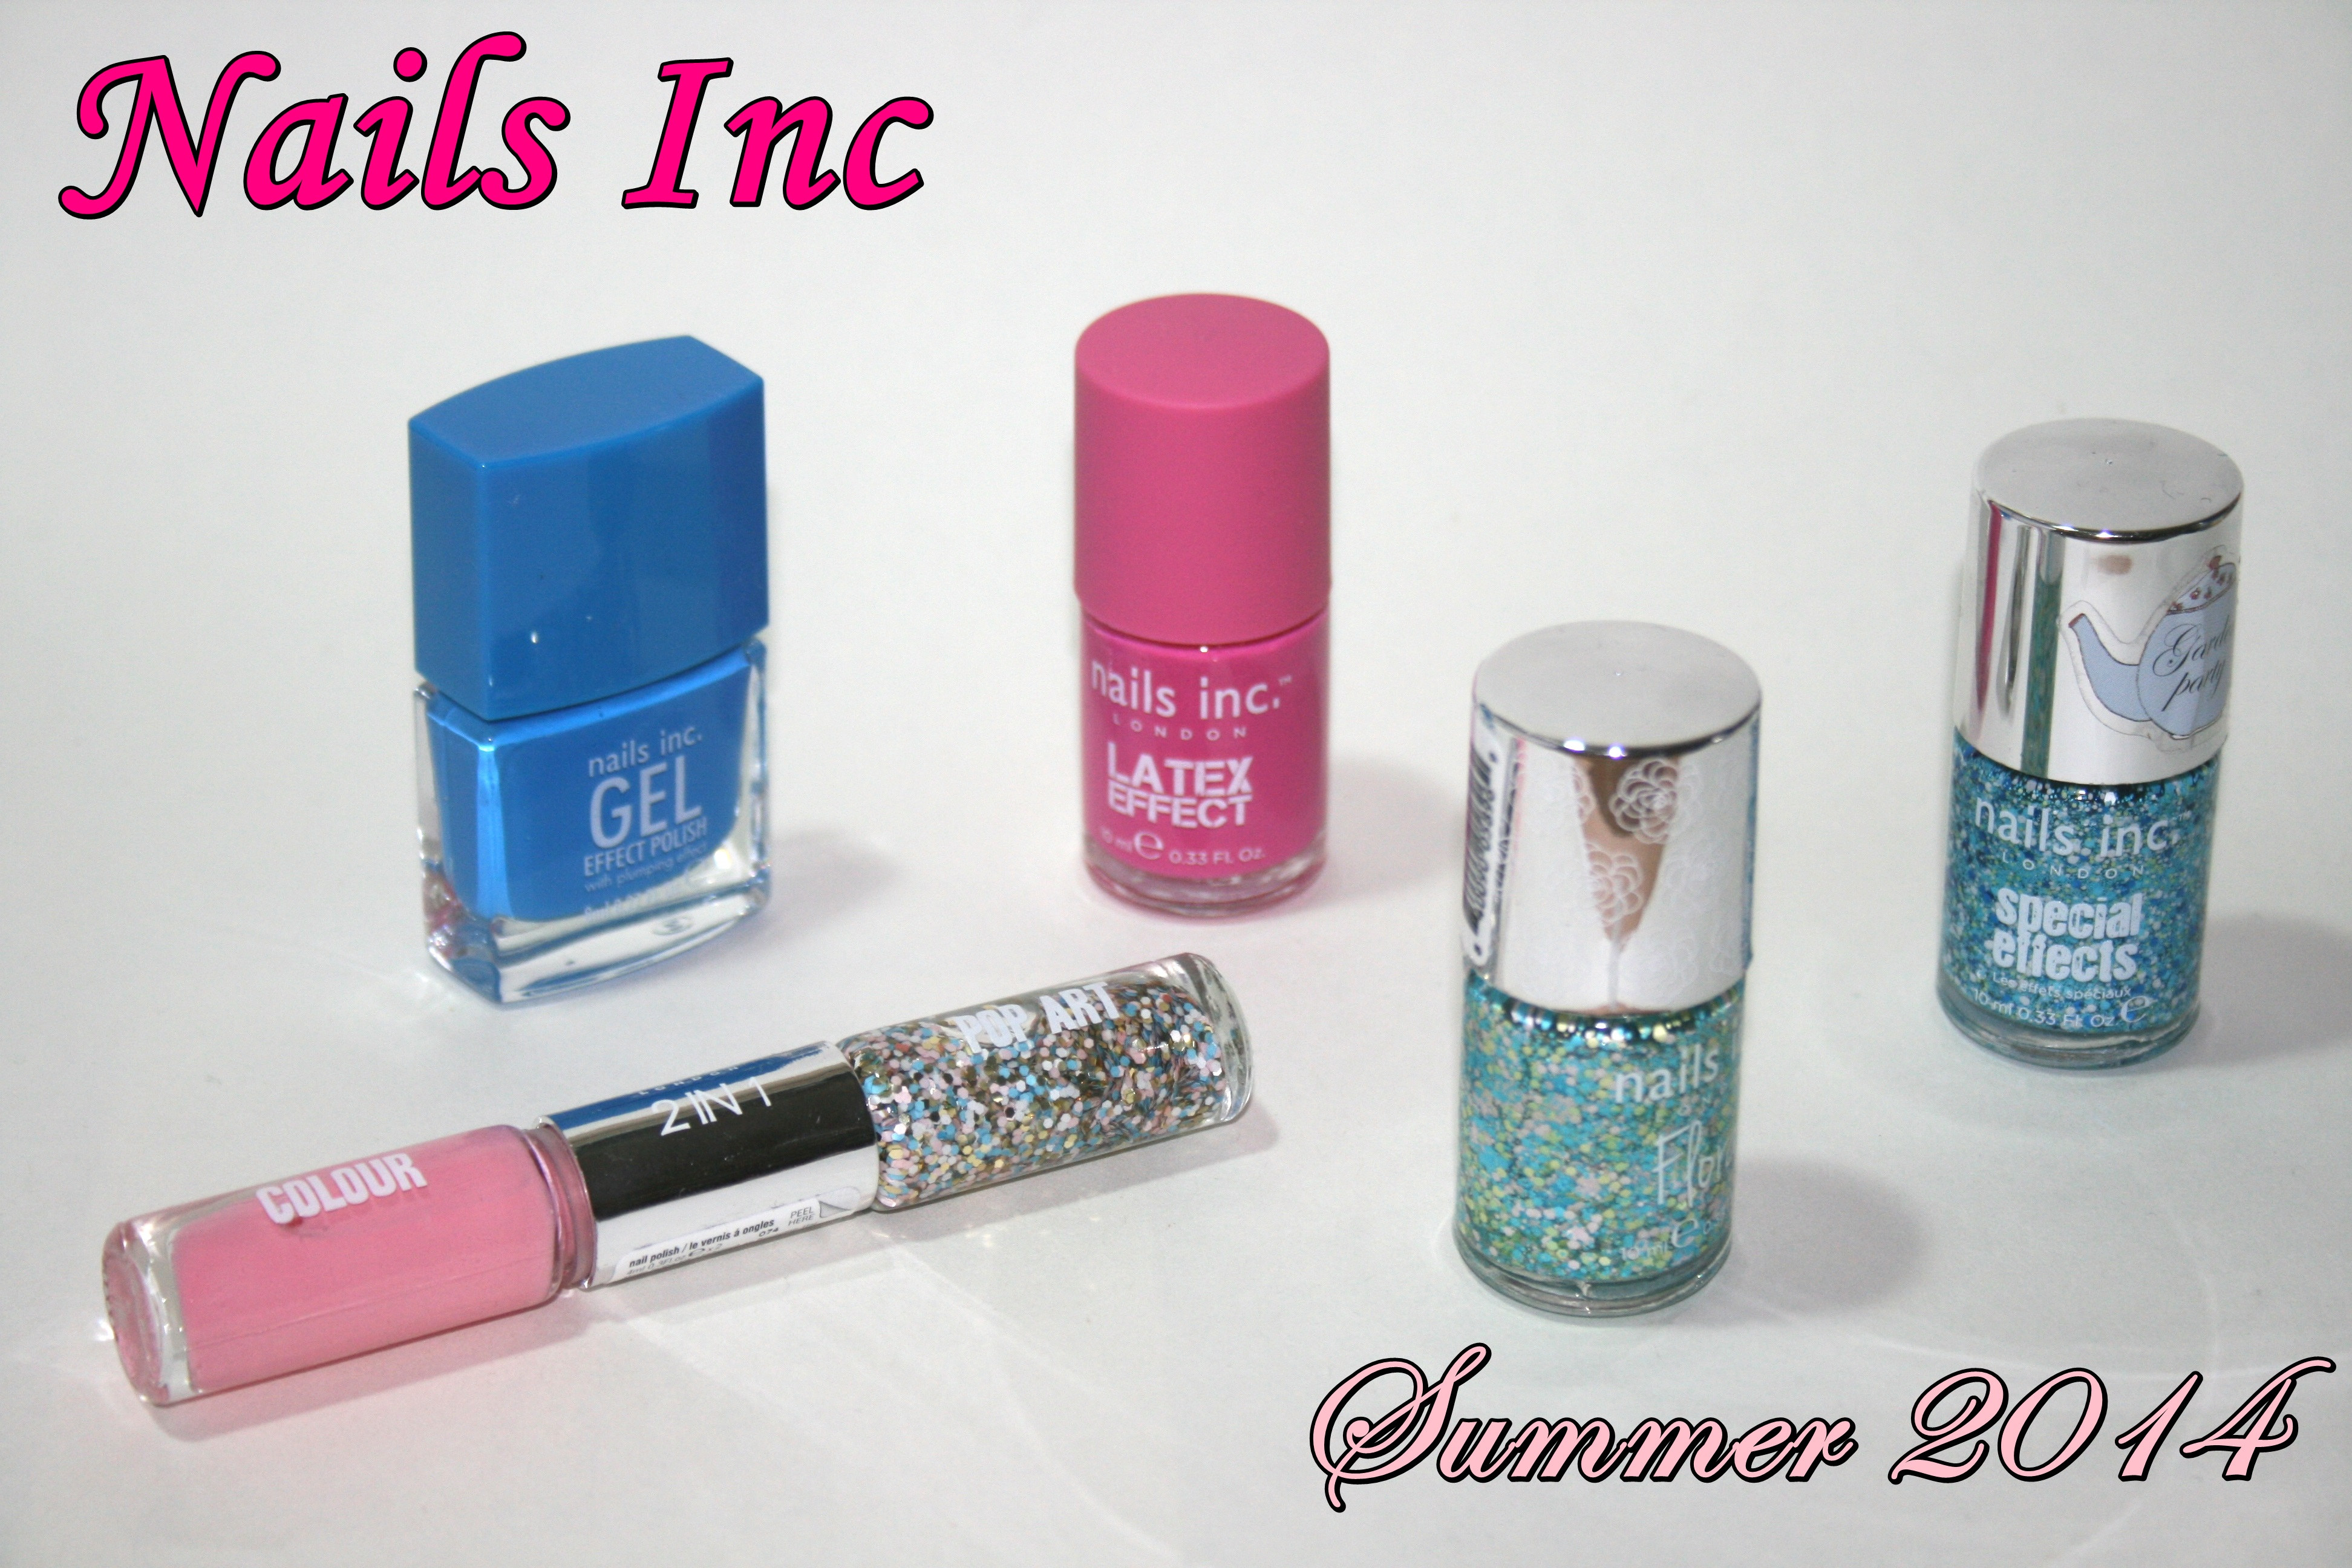 Nails Inc Summer Must-Haves 2014